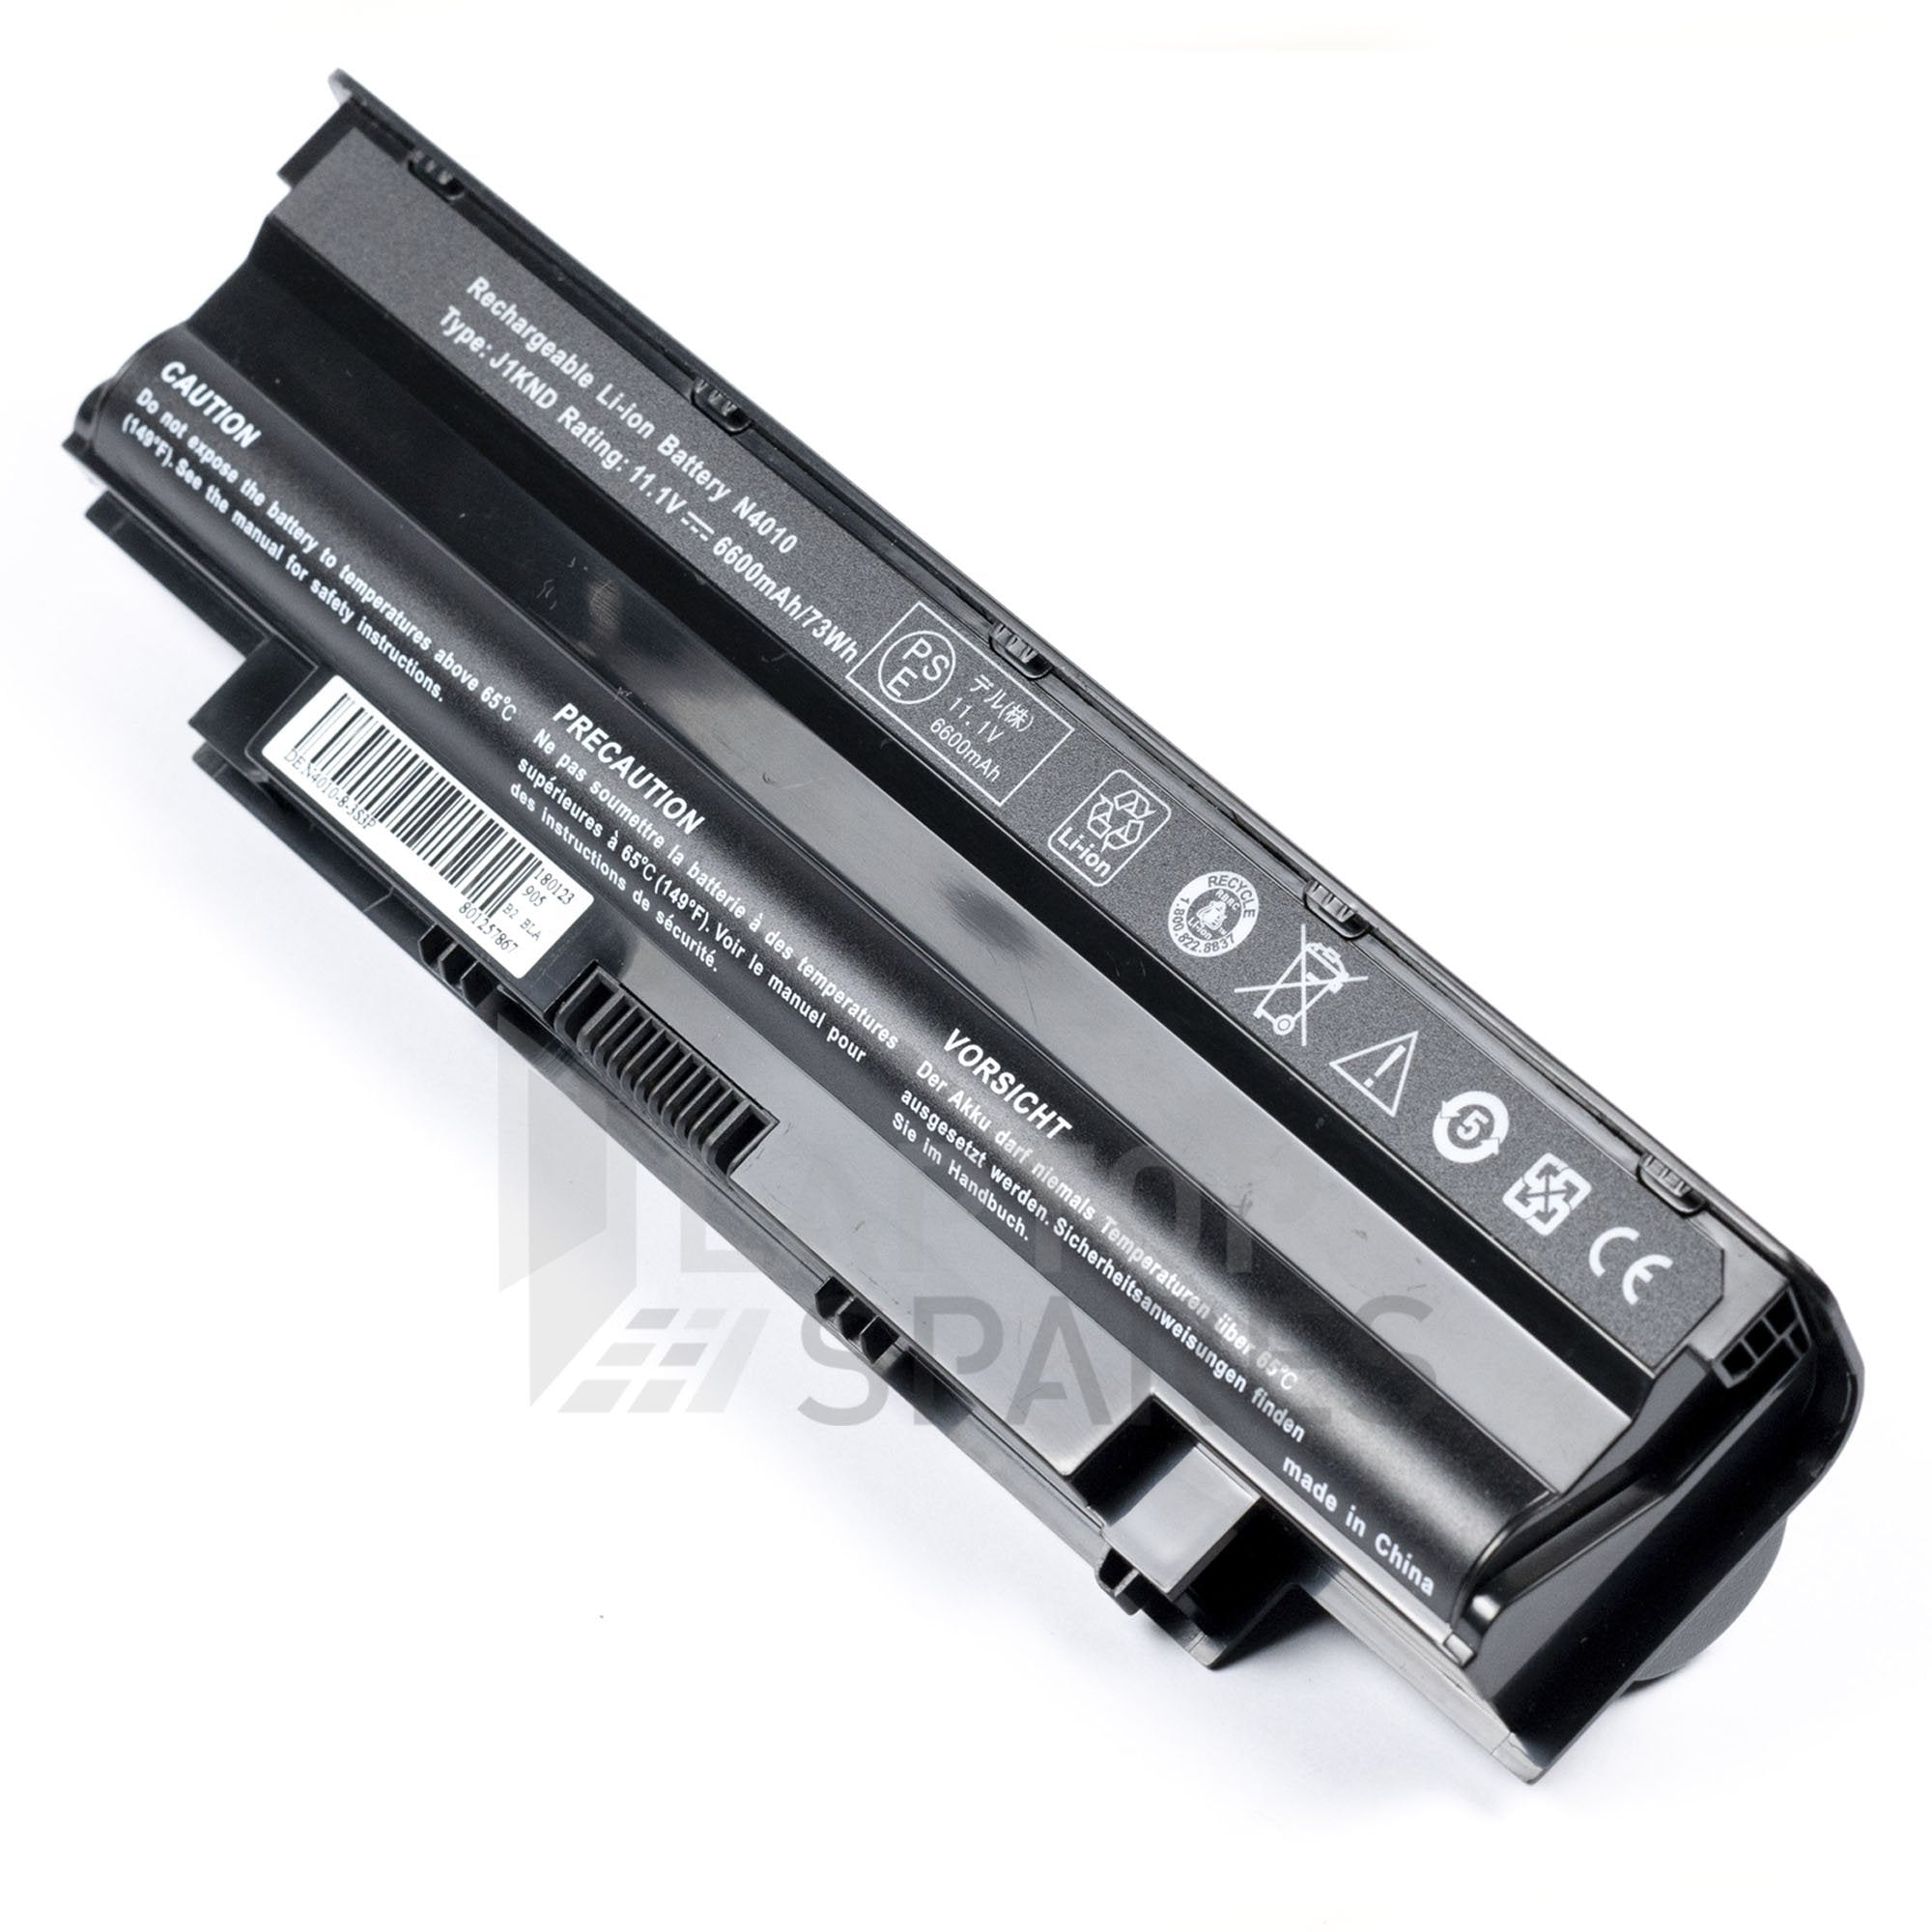 Dell Inspiron M501D 6600mAh 9 Cell Battery